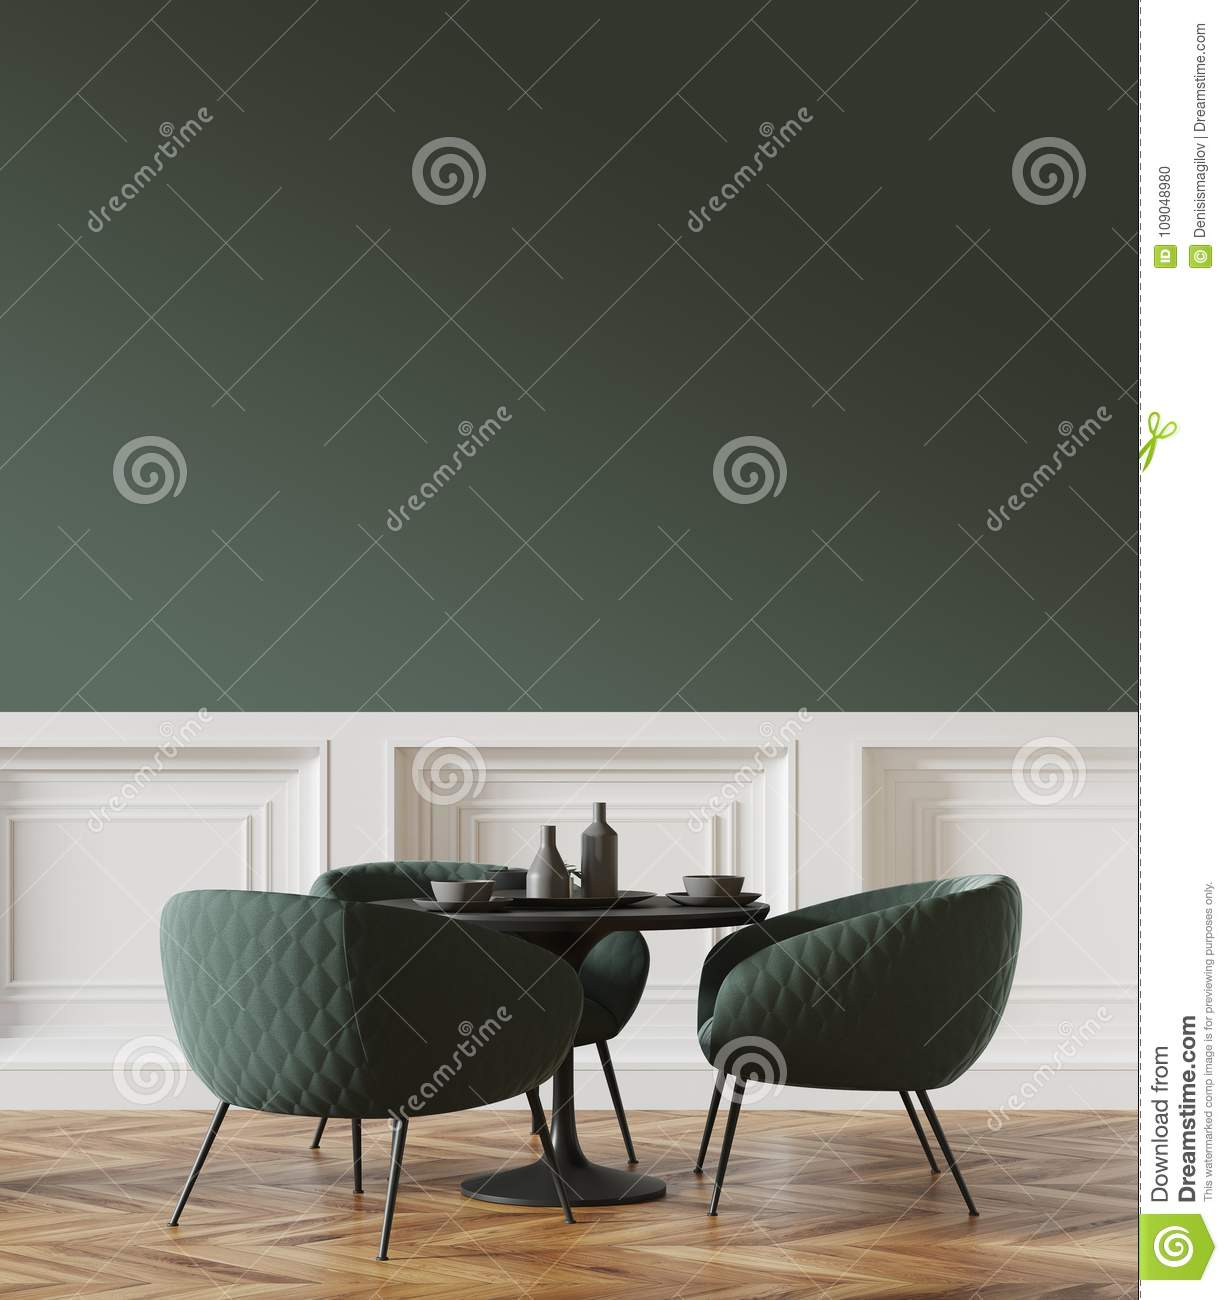 Black Round Table In A Green And White Cafe Stock Illustration - Standing cafe table